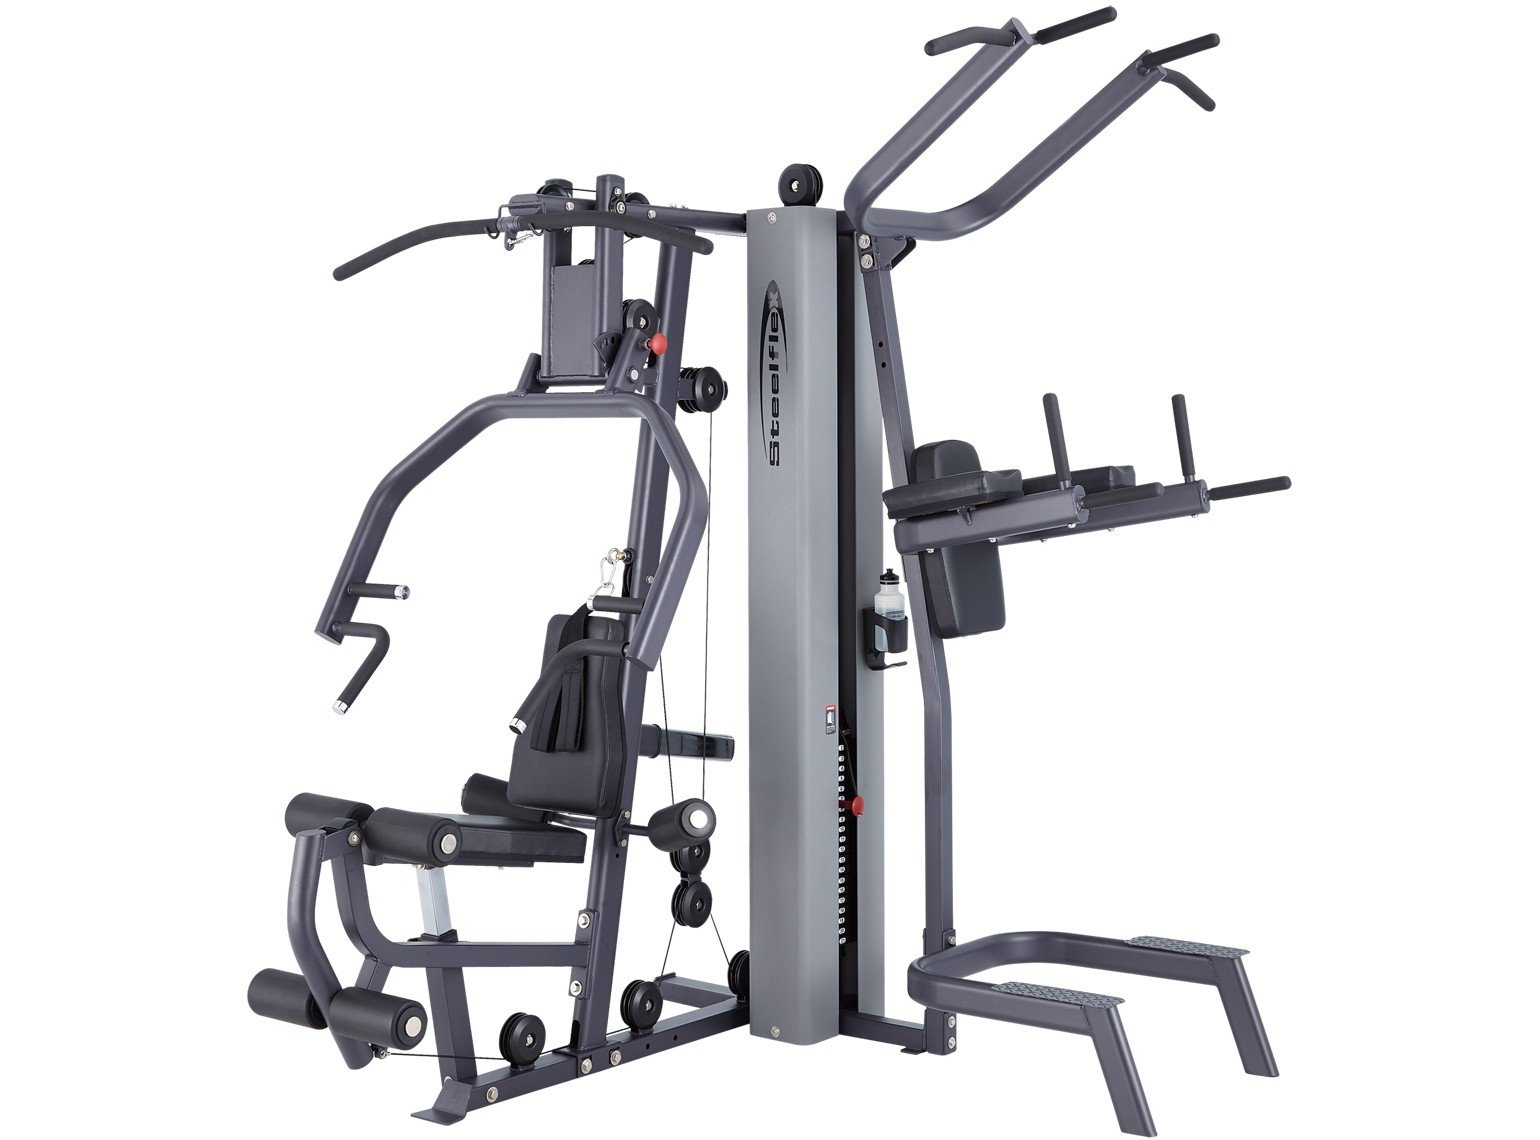 Home Multi Station Gym Pulley Weight Machine - 210 lb. Stack by SteelFlex MG100B